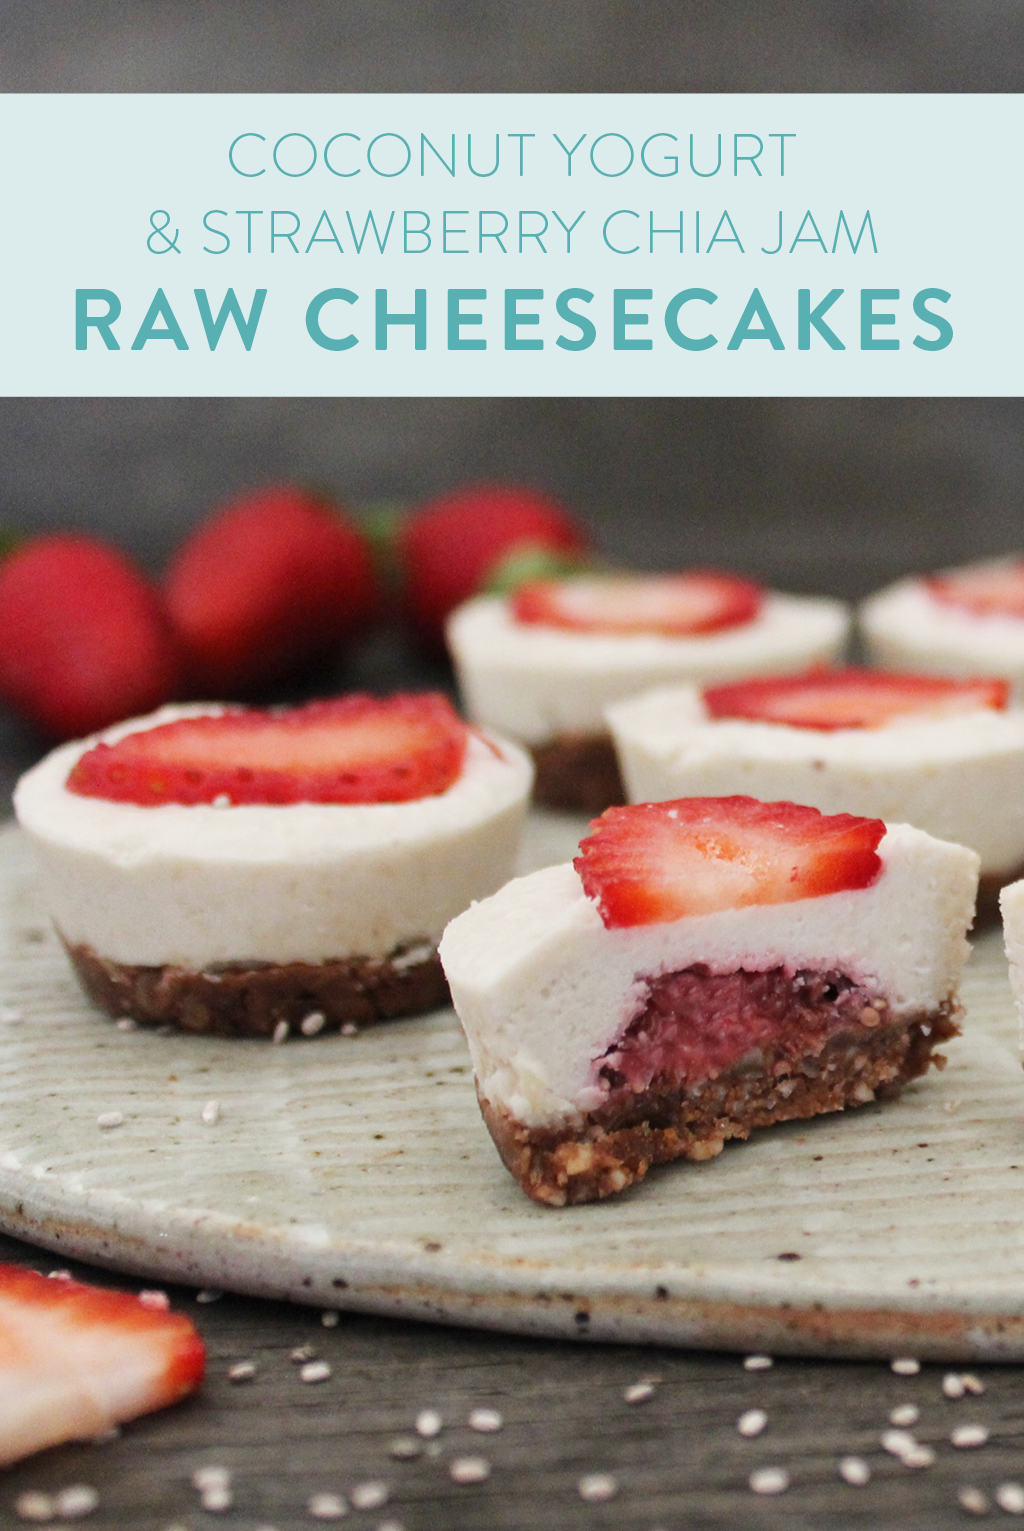 coconut yogurt and strawberry chia jam cheesecakes